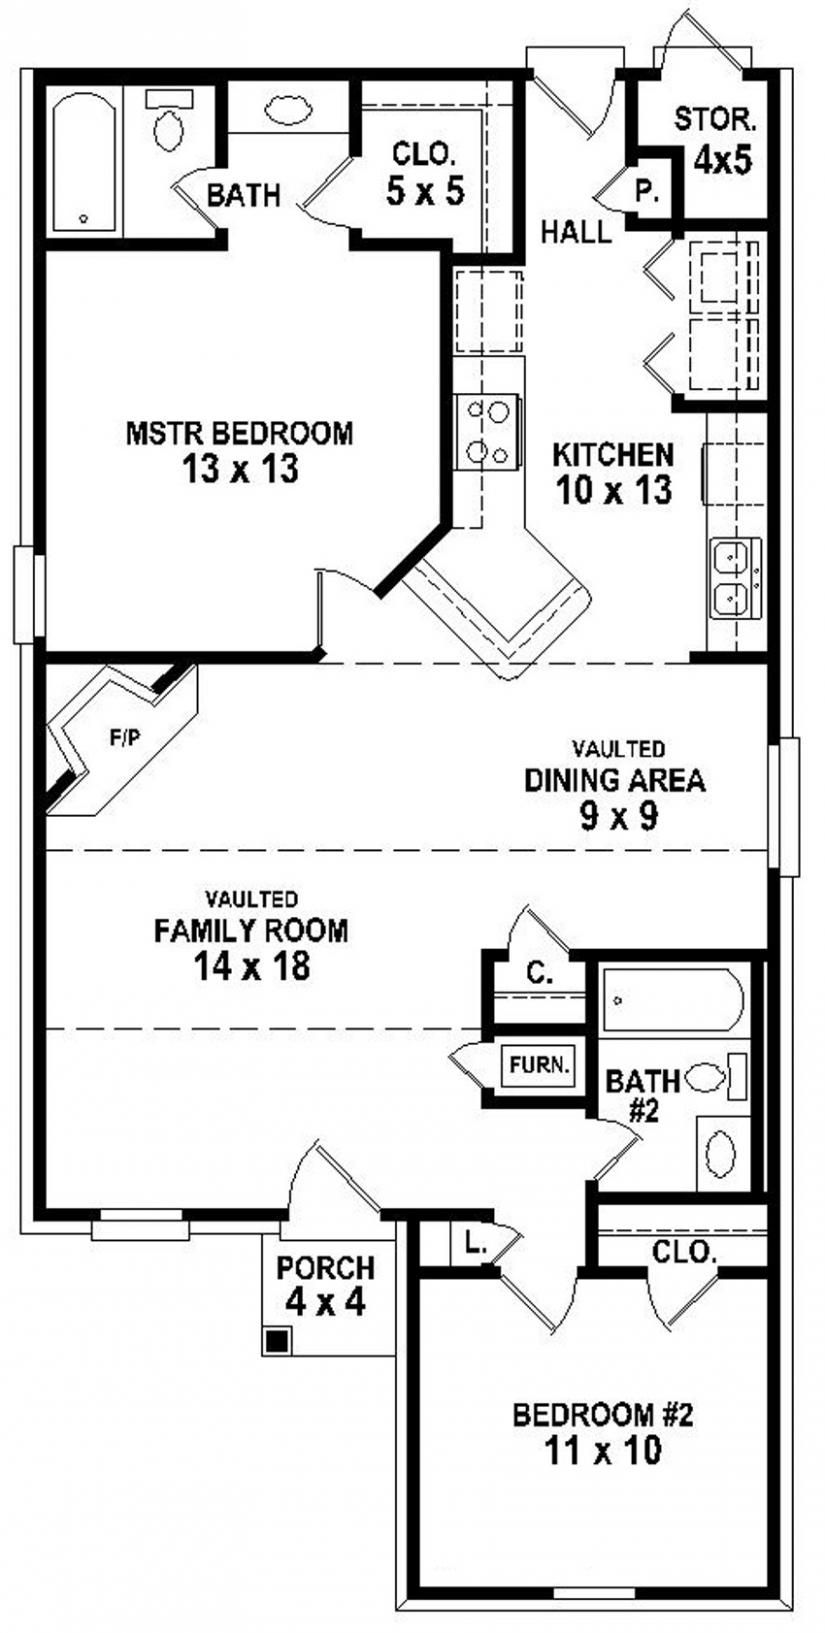 654334 simple 2 bedroom 2 bath house plan house plans floor plans - Simple House Plans